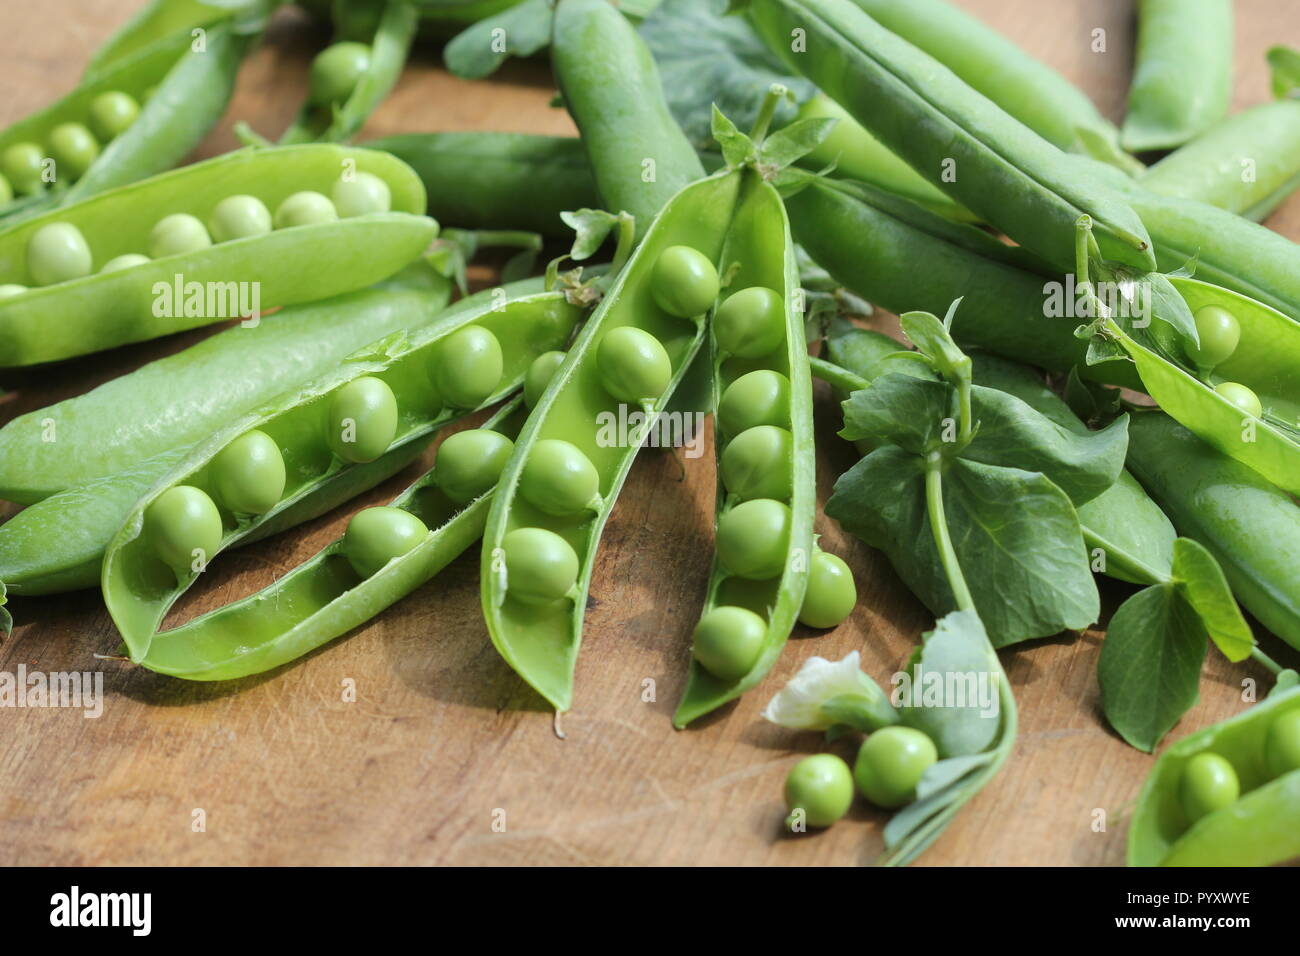 Ripe pods of green peas, fresh green peas on wooden table, close up . - Stock Image